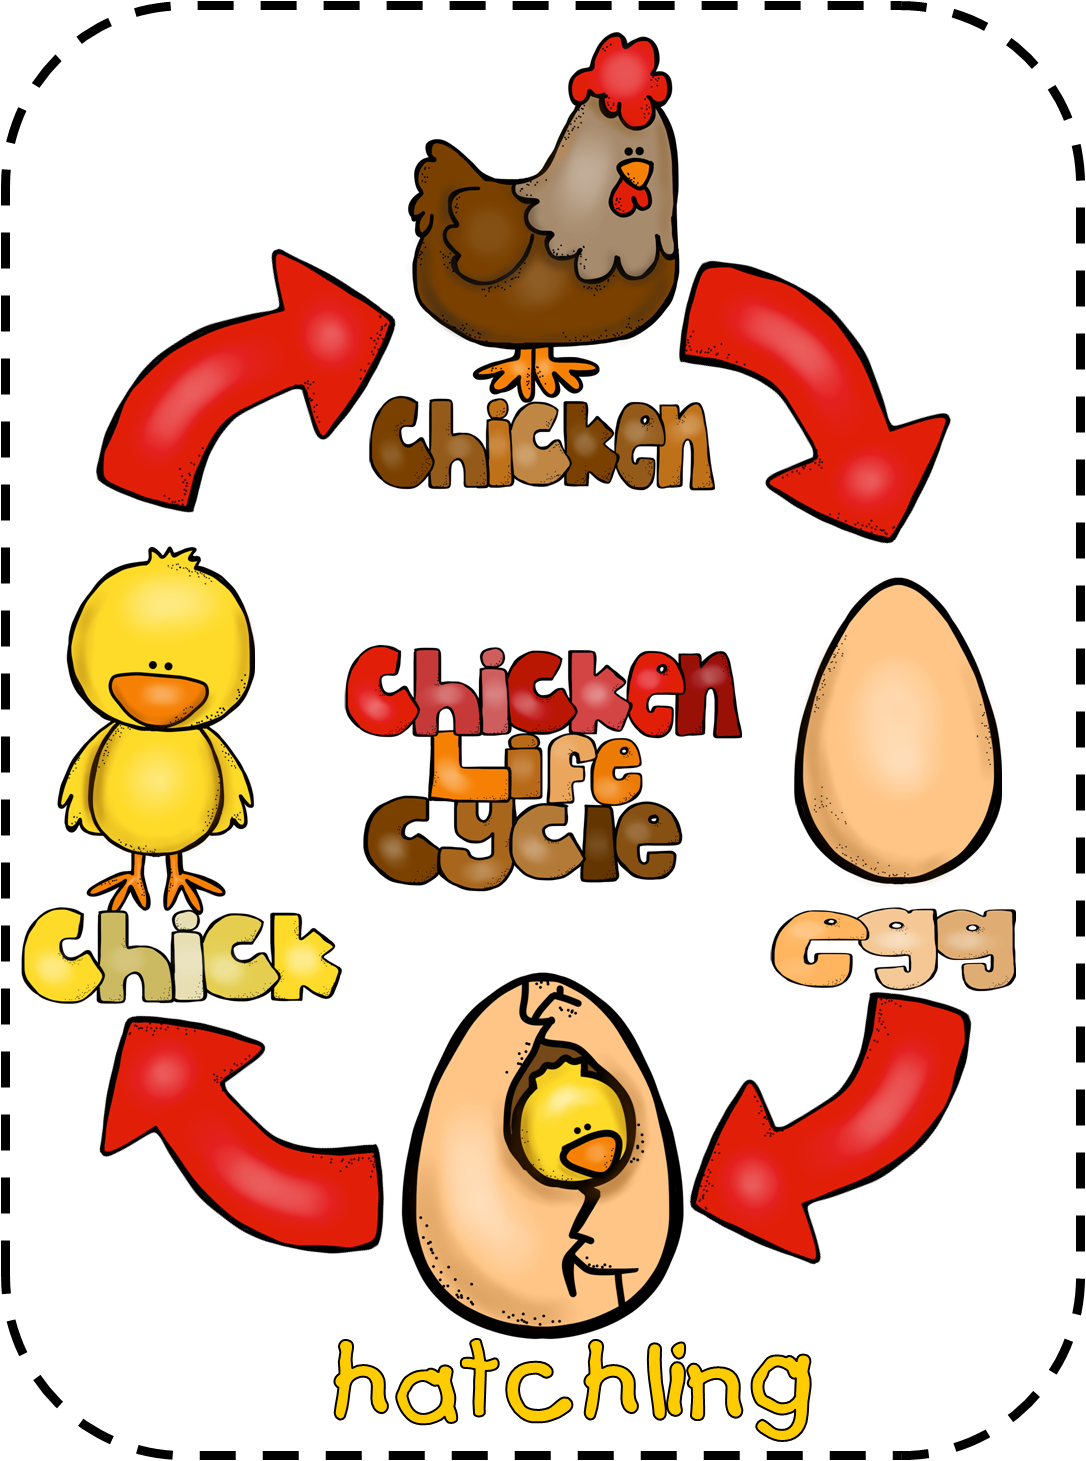 Uncategorized Chicken Life Cycle Worksheet chicken life cycle free from first grade wow lesson plans wow